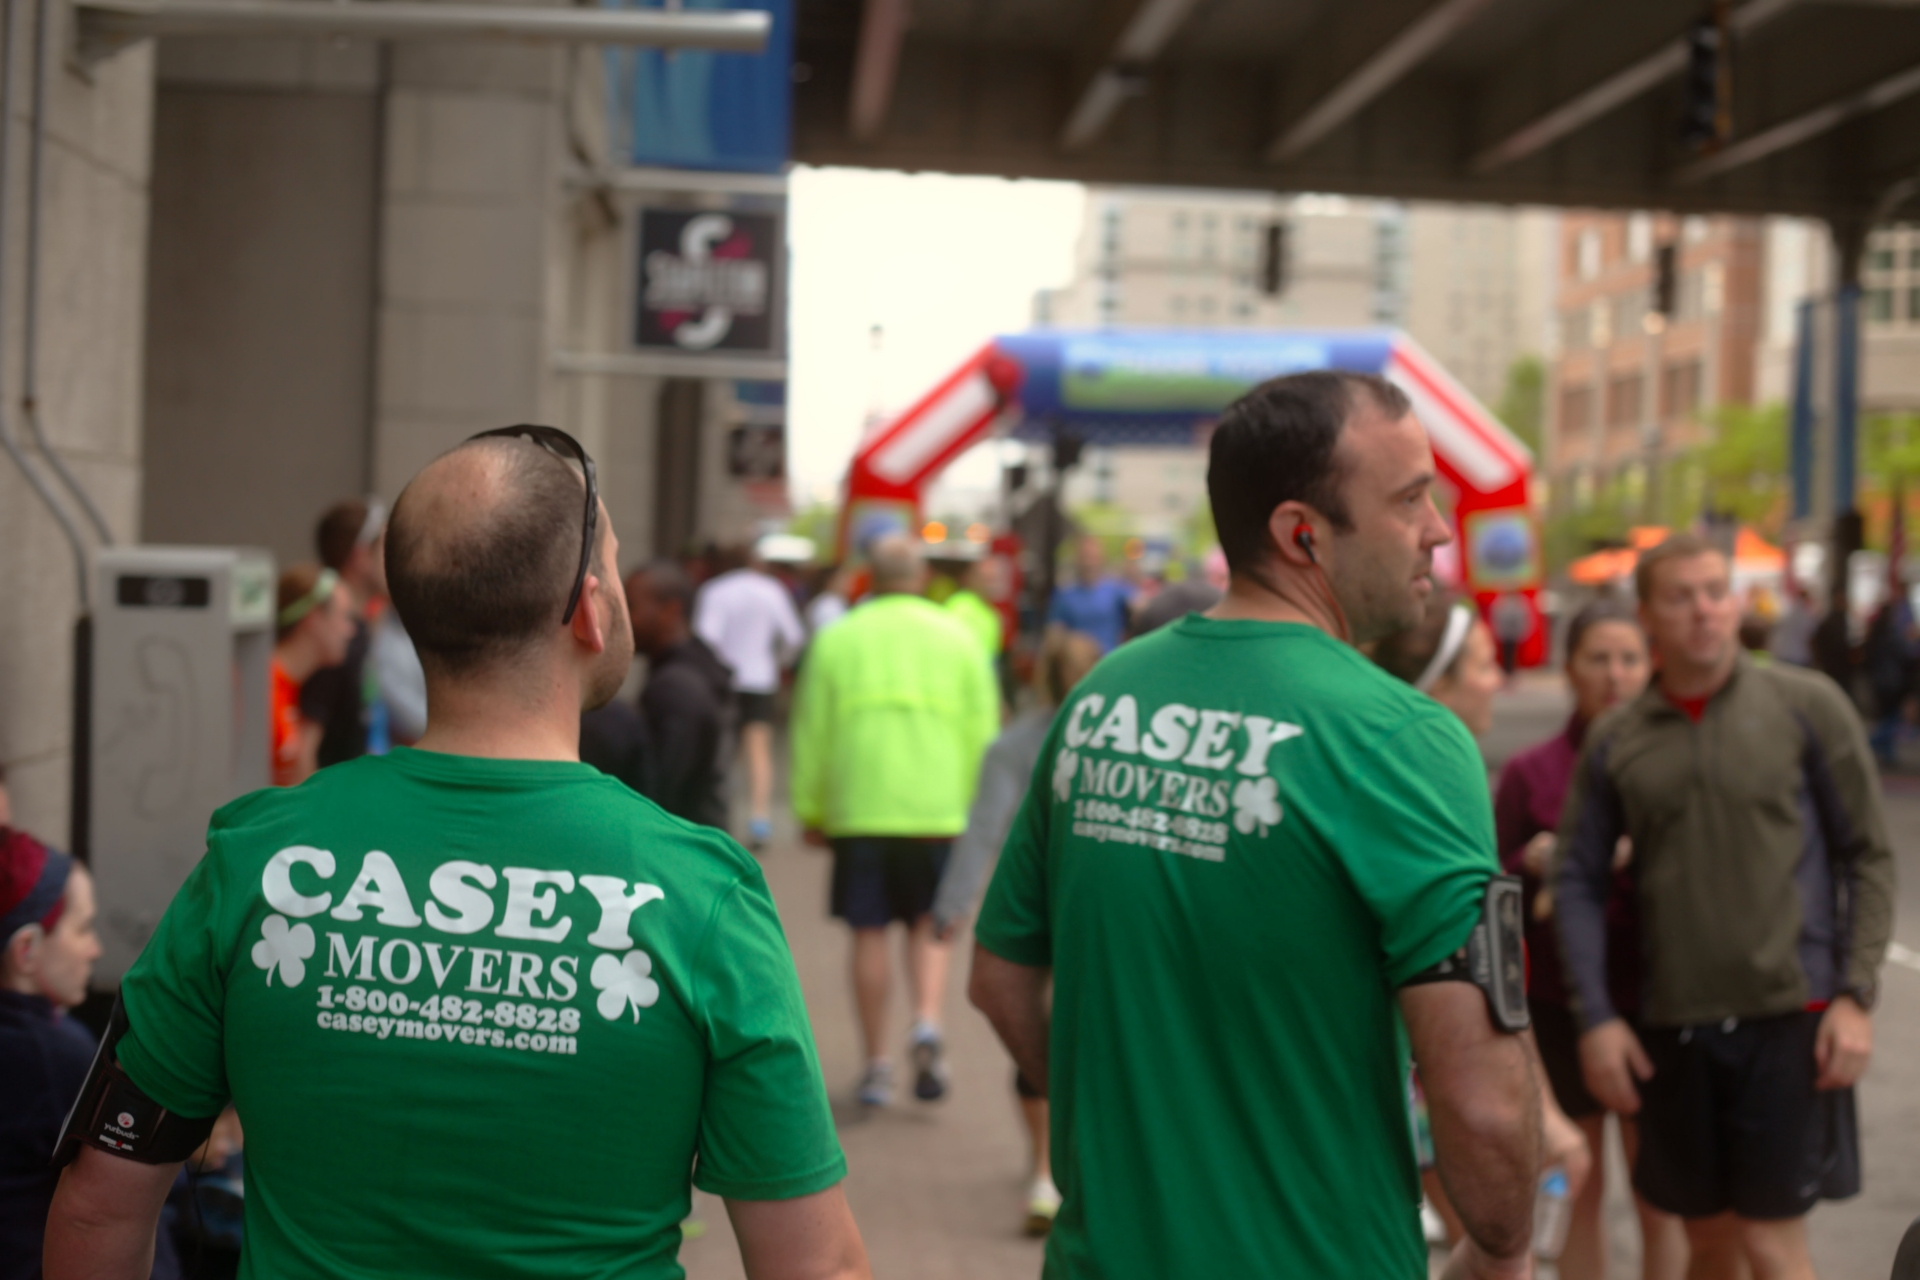 Casey Movers Running Team at Bostons Run to Remember 2014